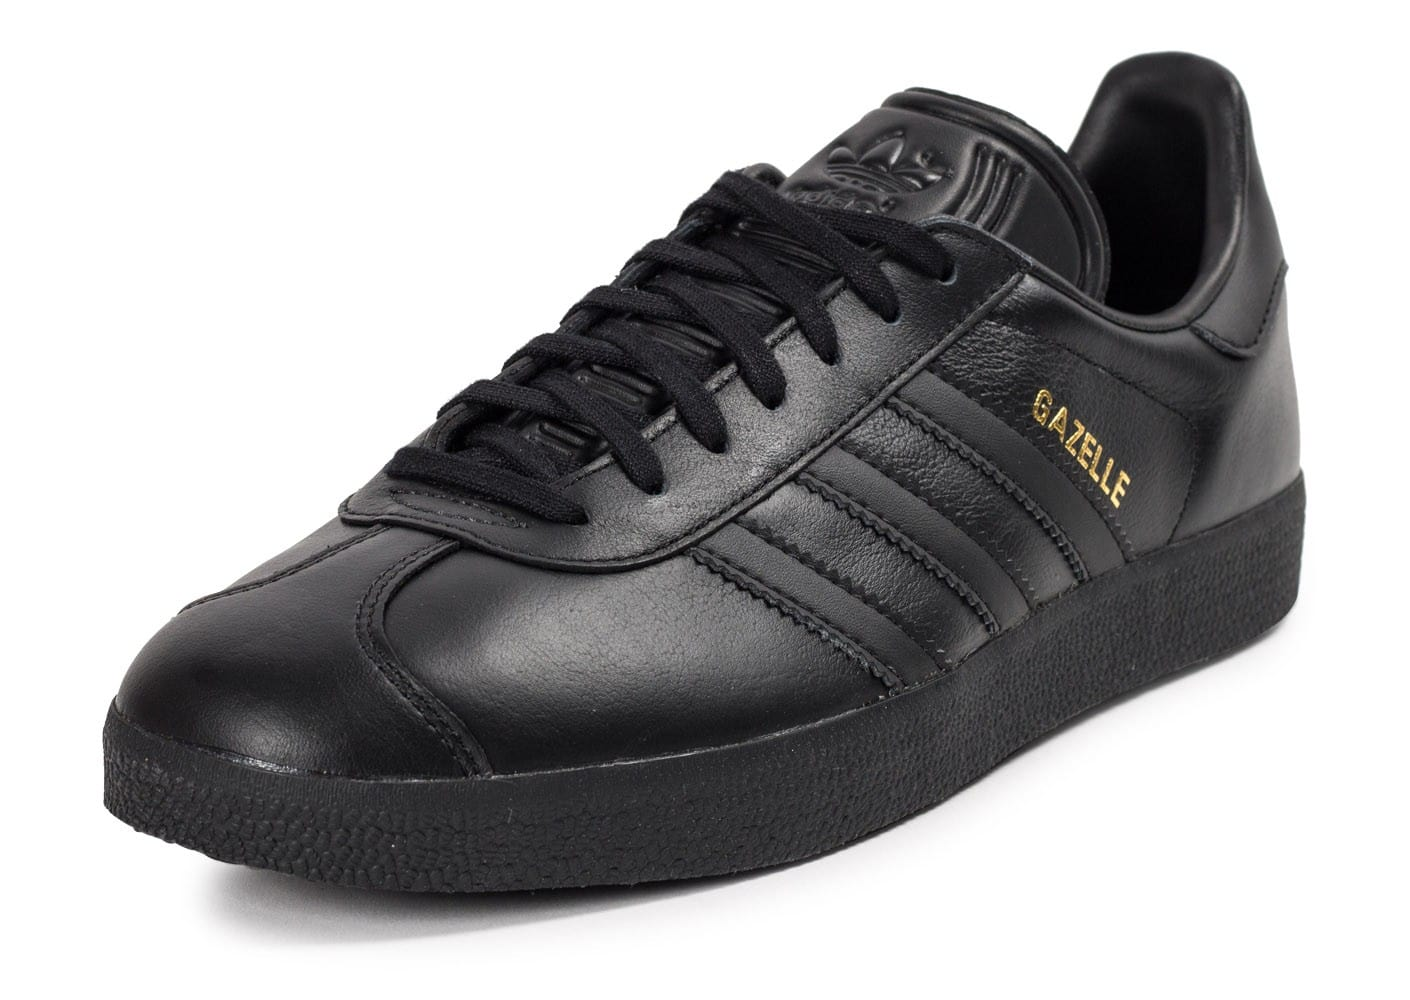 best wholesaler online here superior quality adidas Gazelle Cuir noire - Chaussures Baskets homme - Chausport